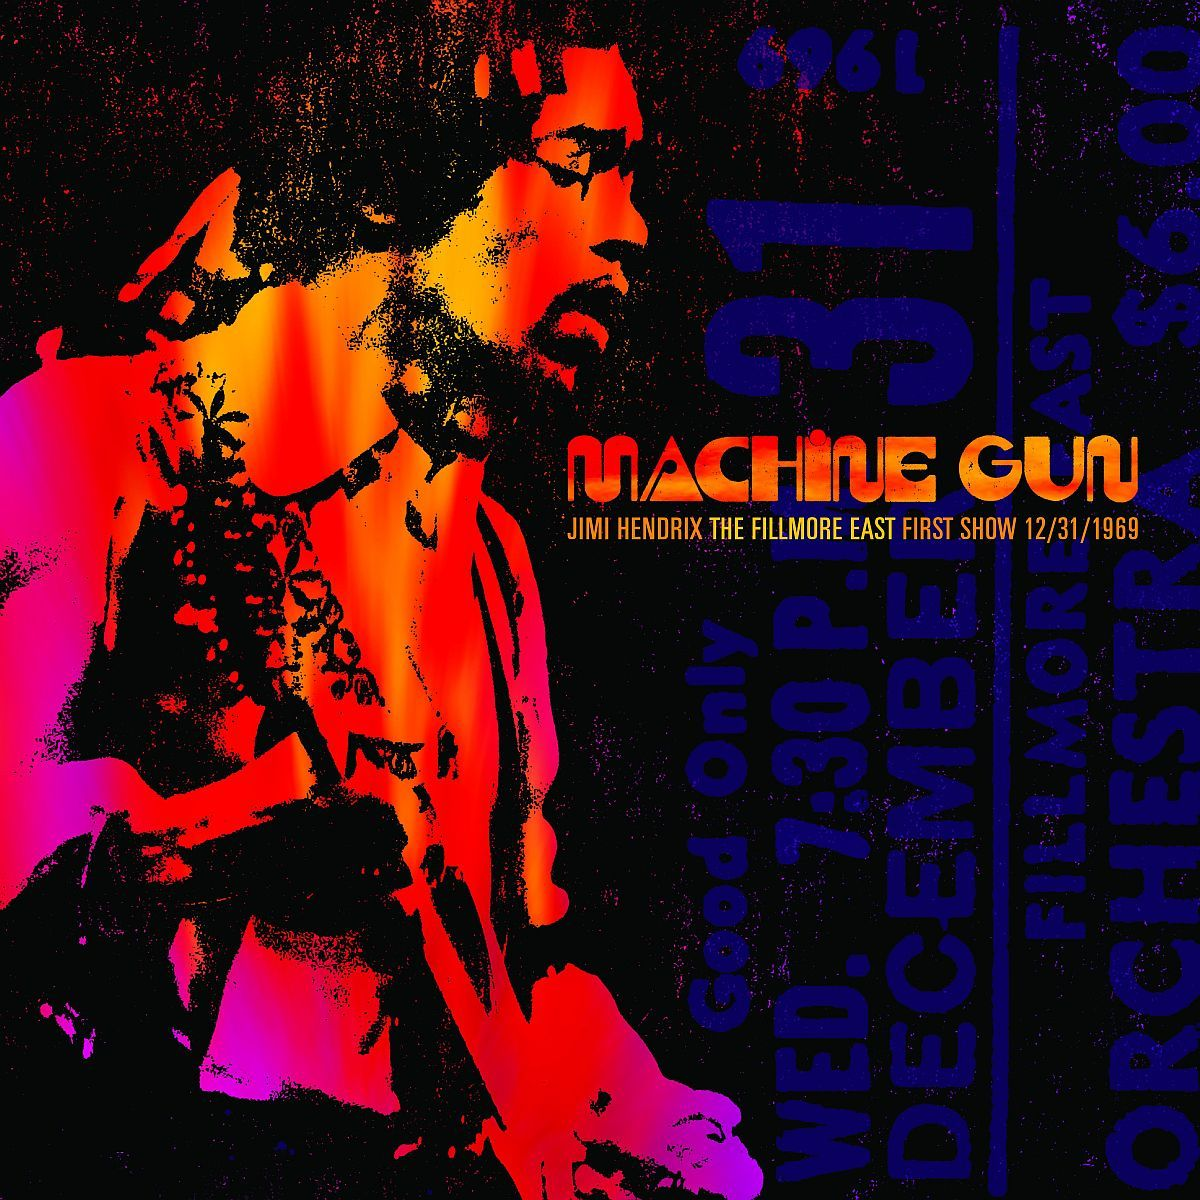 Machine Gun: Jimi Hendrix, The Fillmore East First Show CD